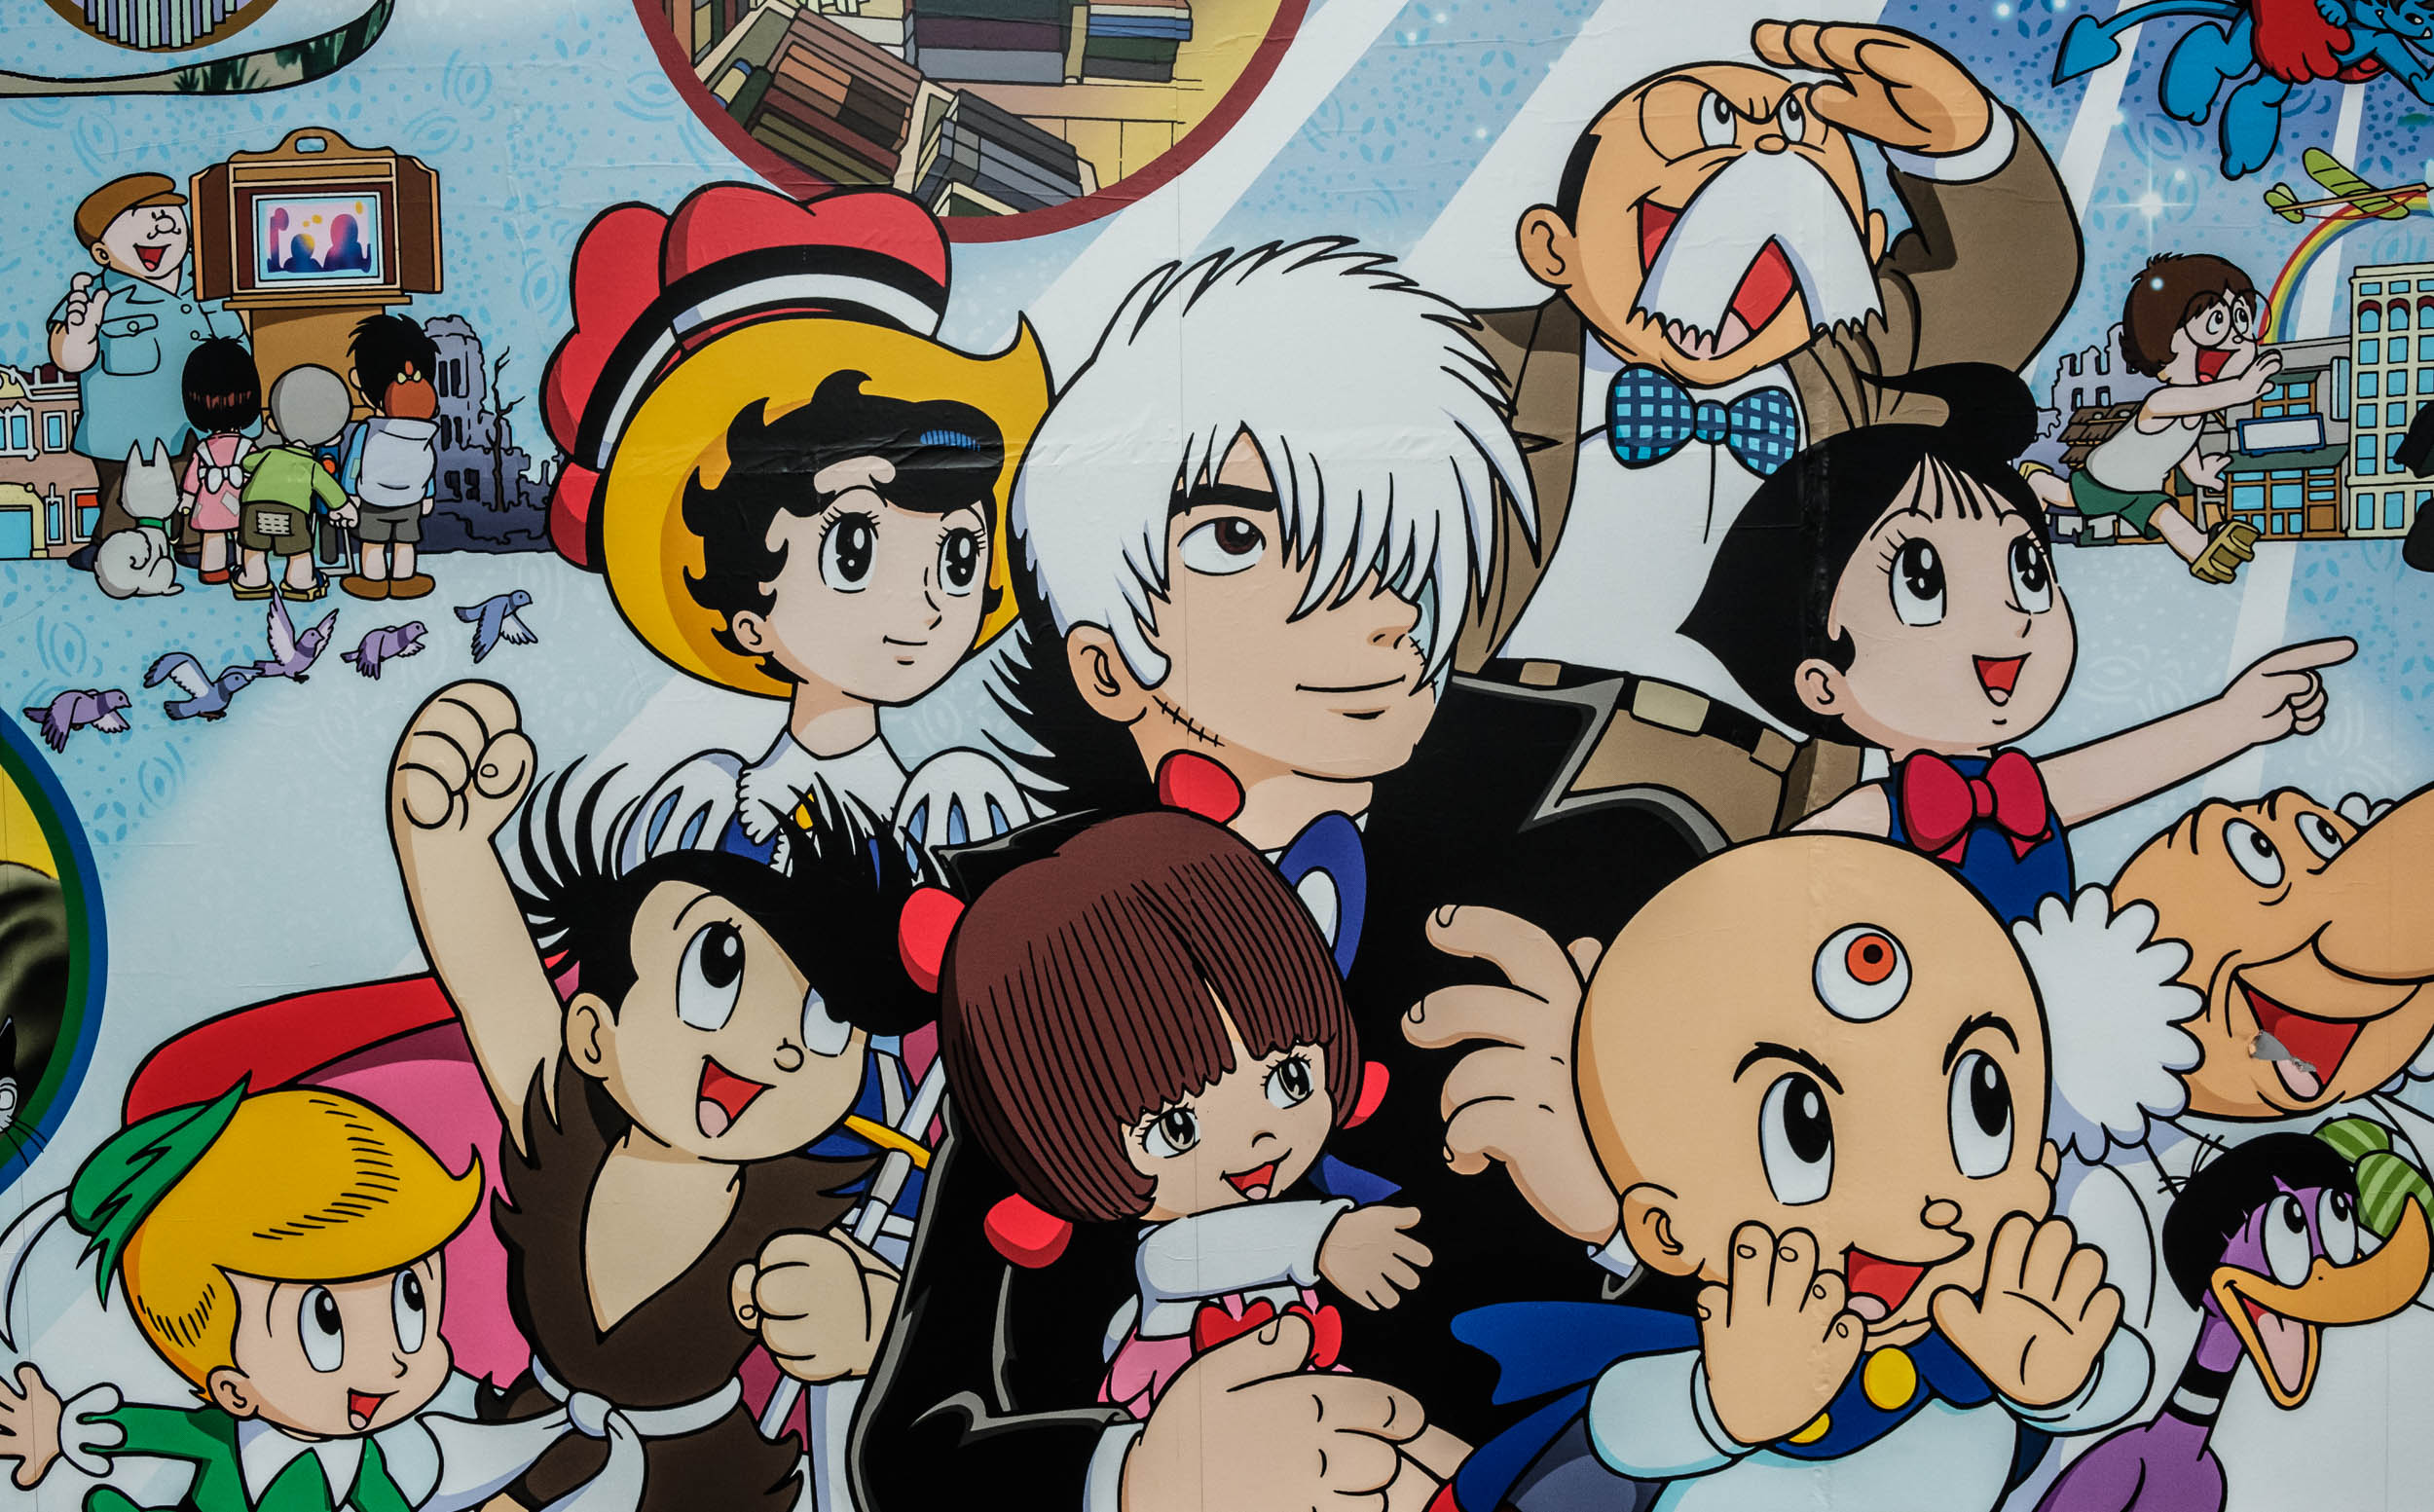 Black Jack and friends